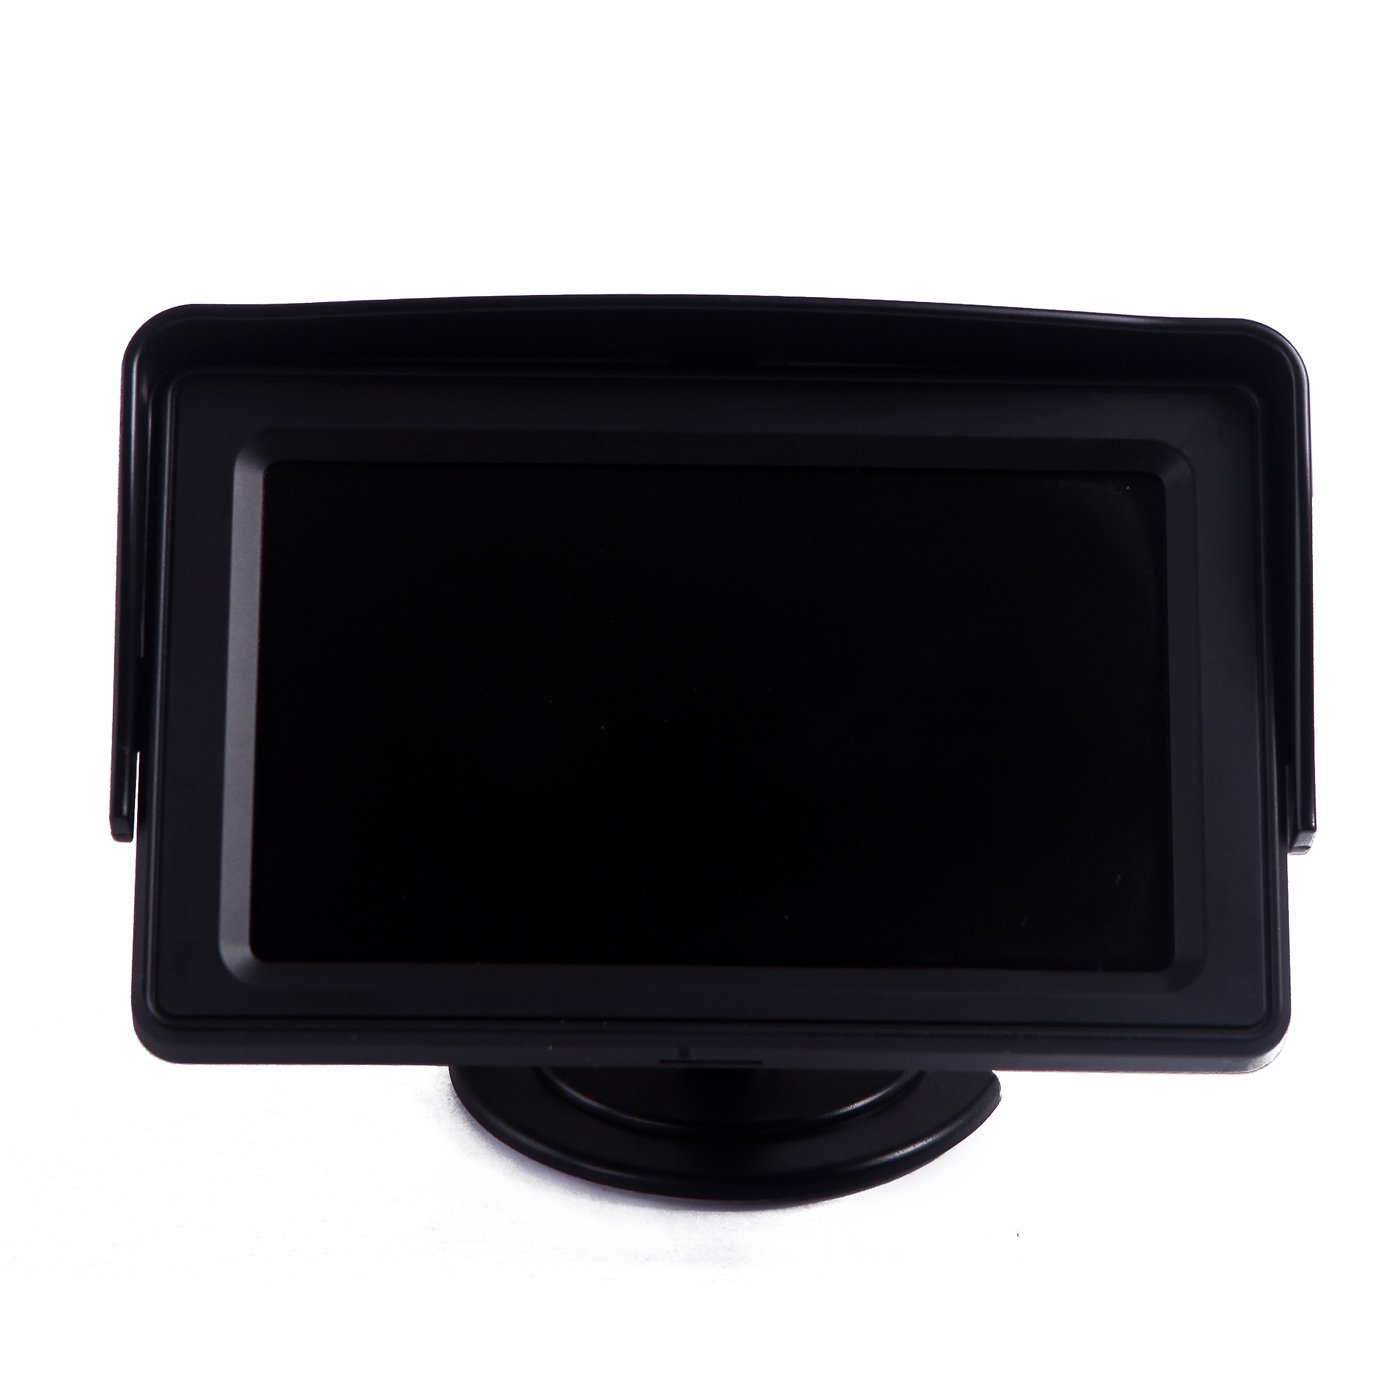 HDE 4.3 LCD Car Dashboard Color Monitor for Rearview Vehicle Backup Parking Cameras